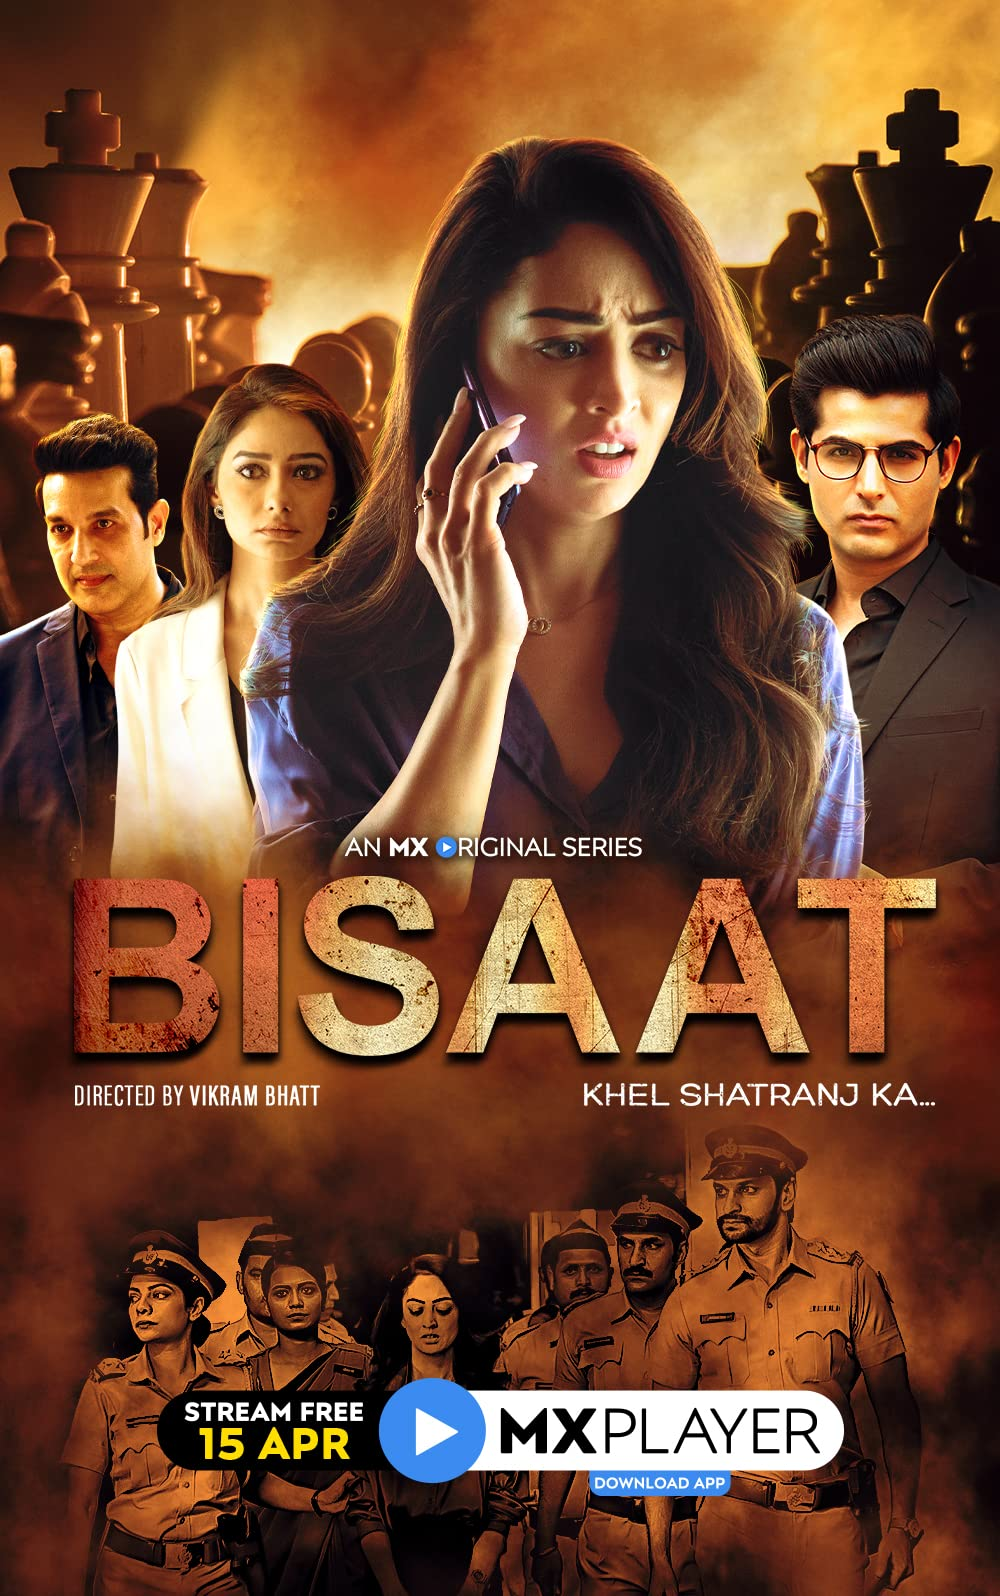 Bisaat Khel Shatranj Ka 2021 S01 Hindi MX Original Complete Web Series 720p HDRip 900MB Download